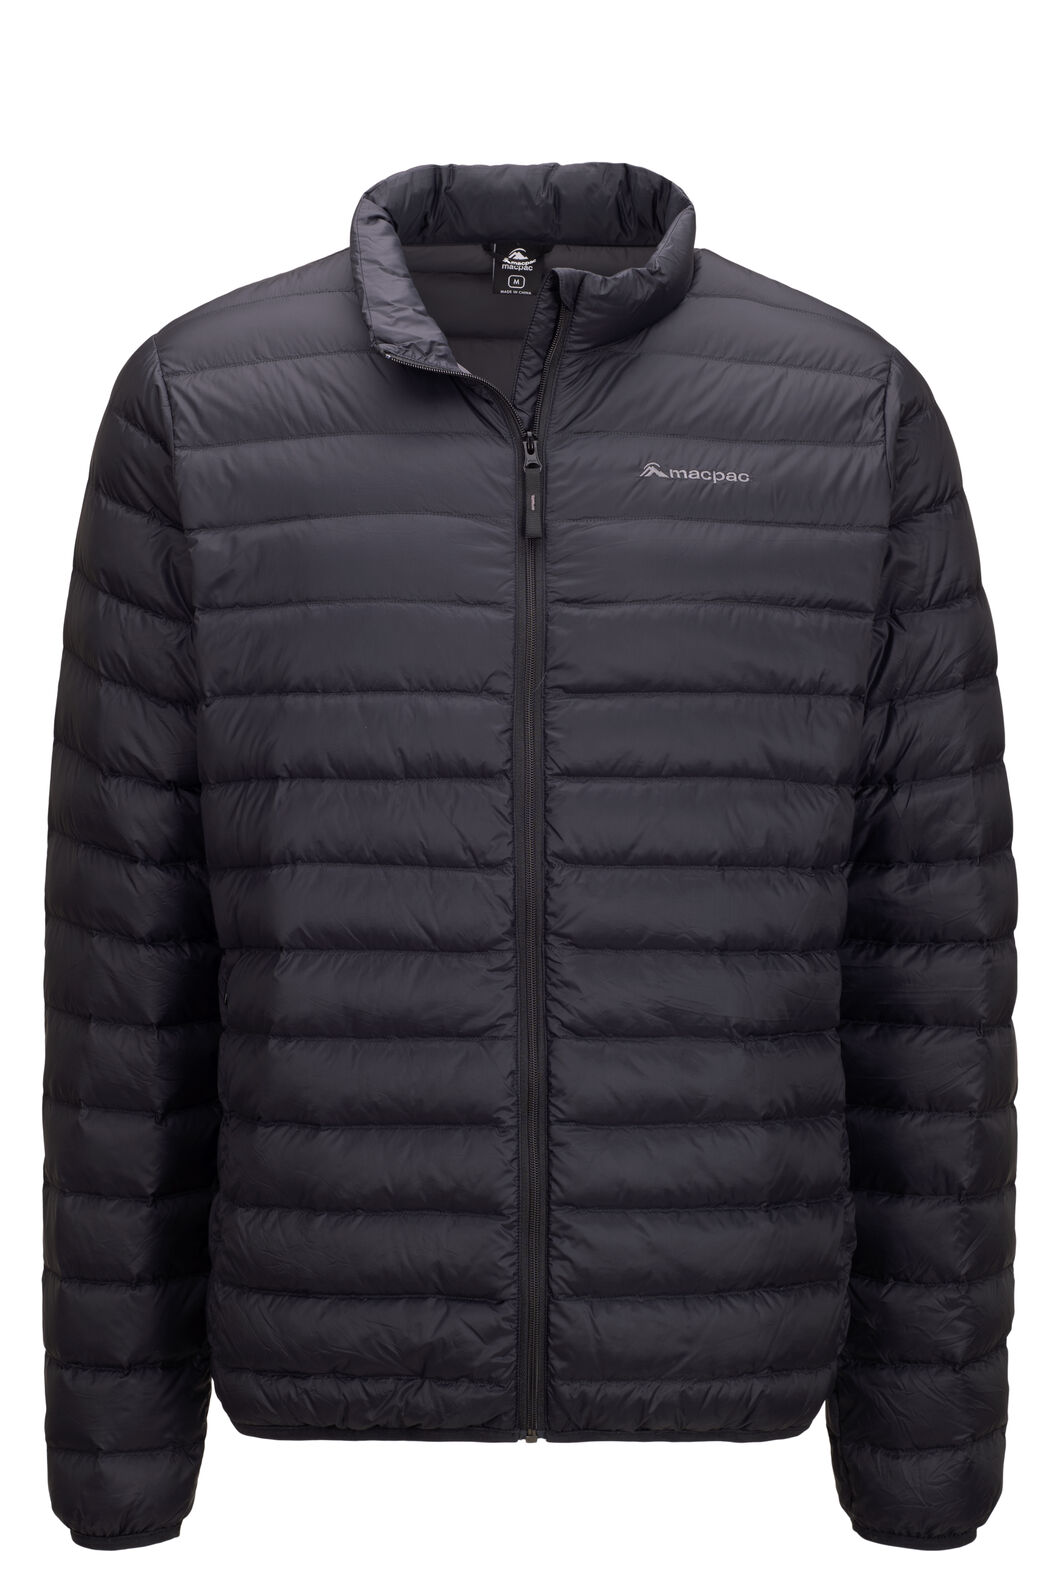 Macpac Uber Light Down Jacket — Men's, Black, hi-res